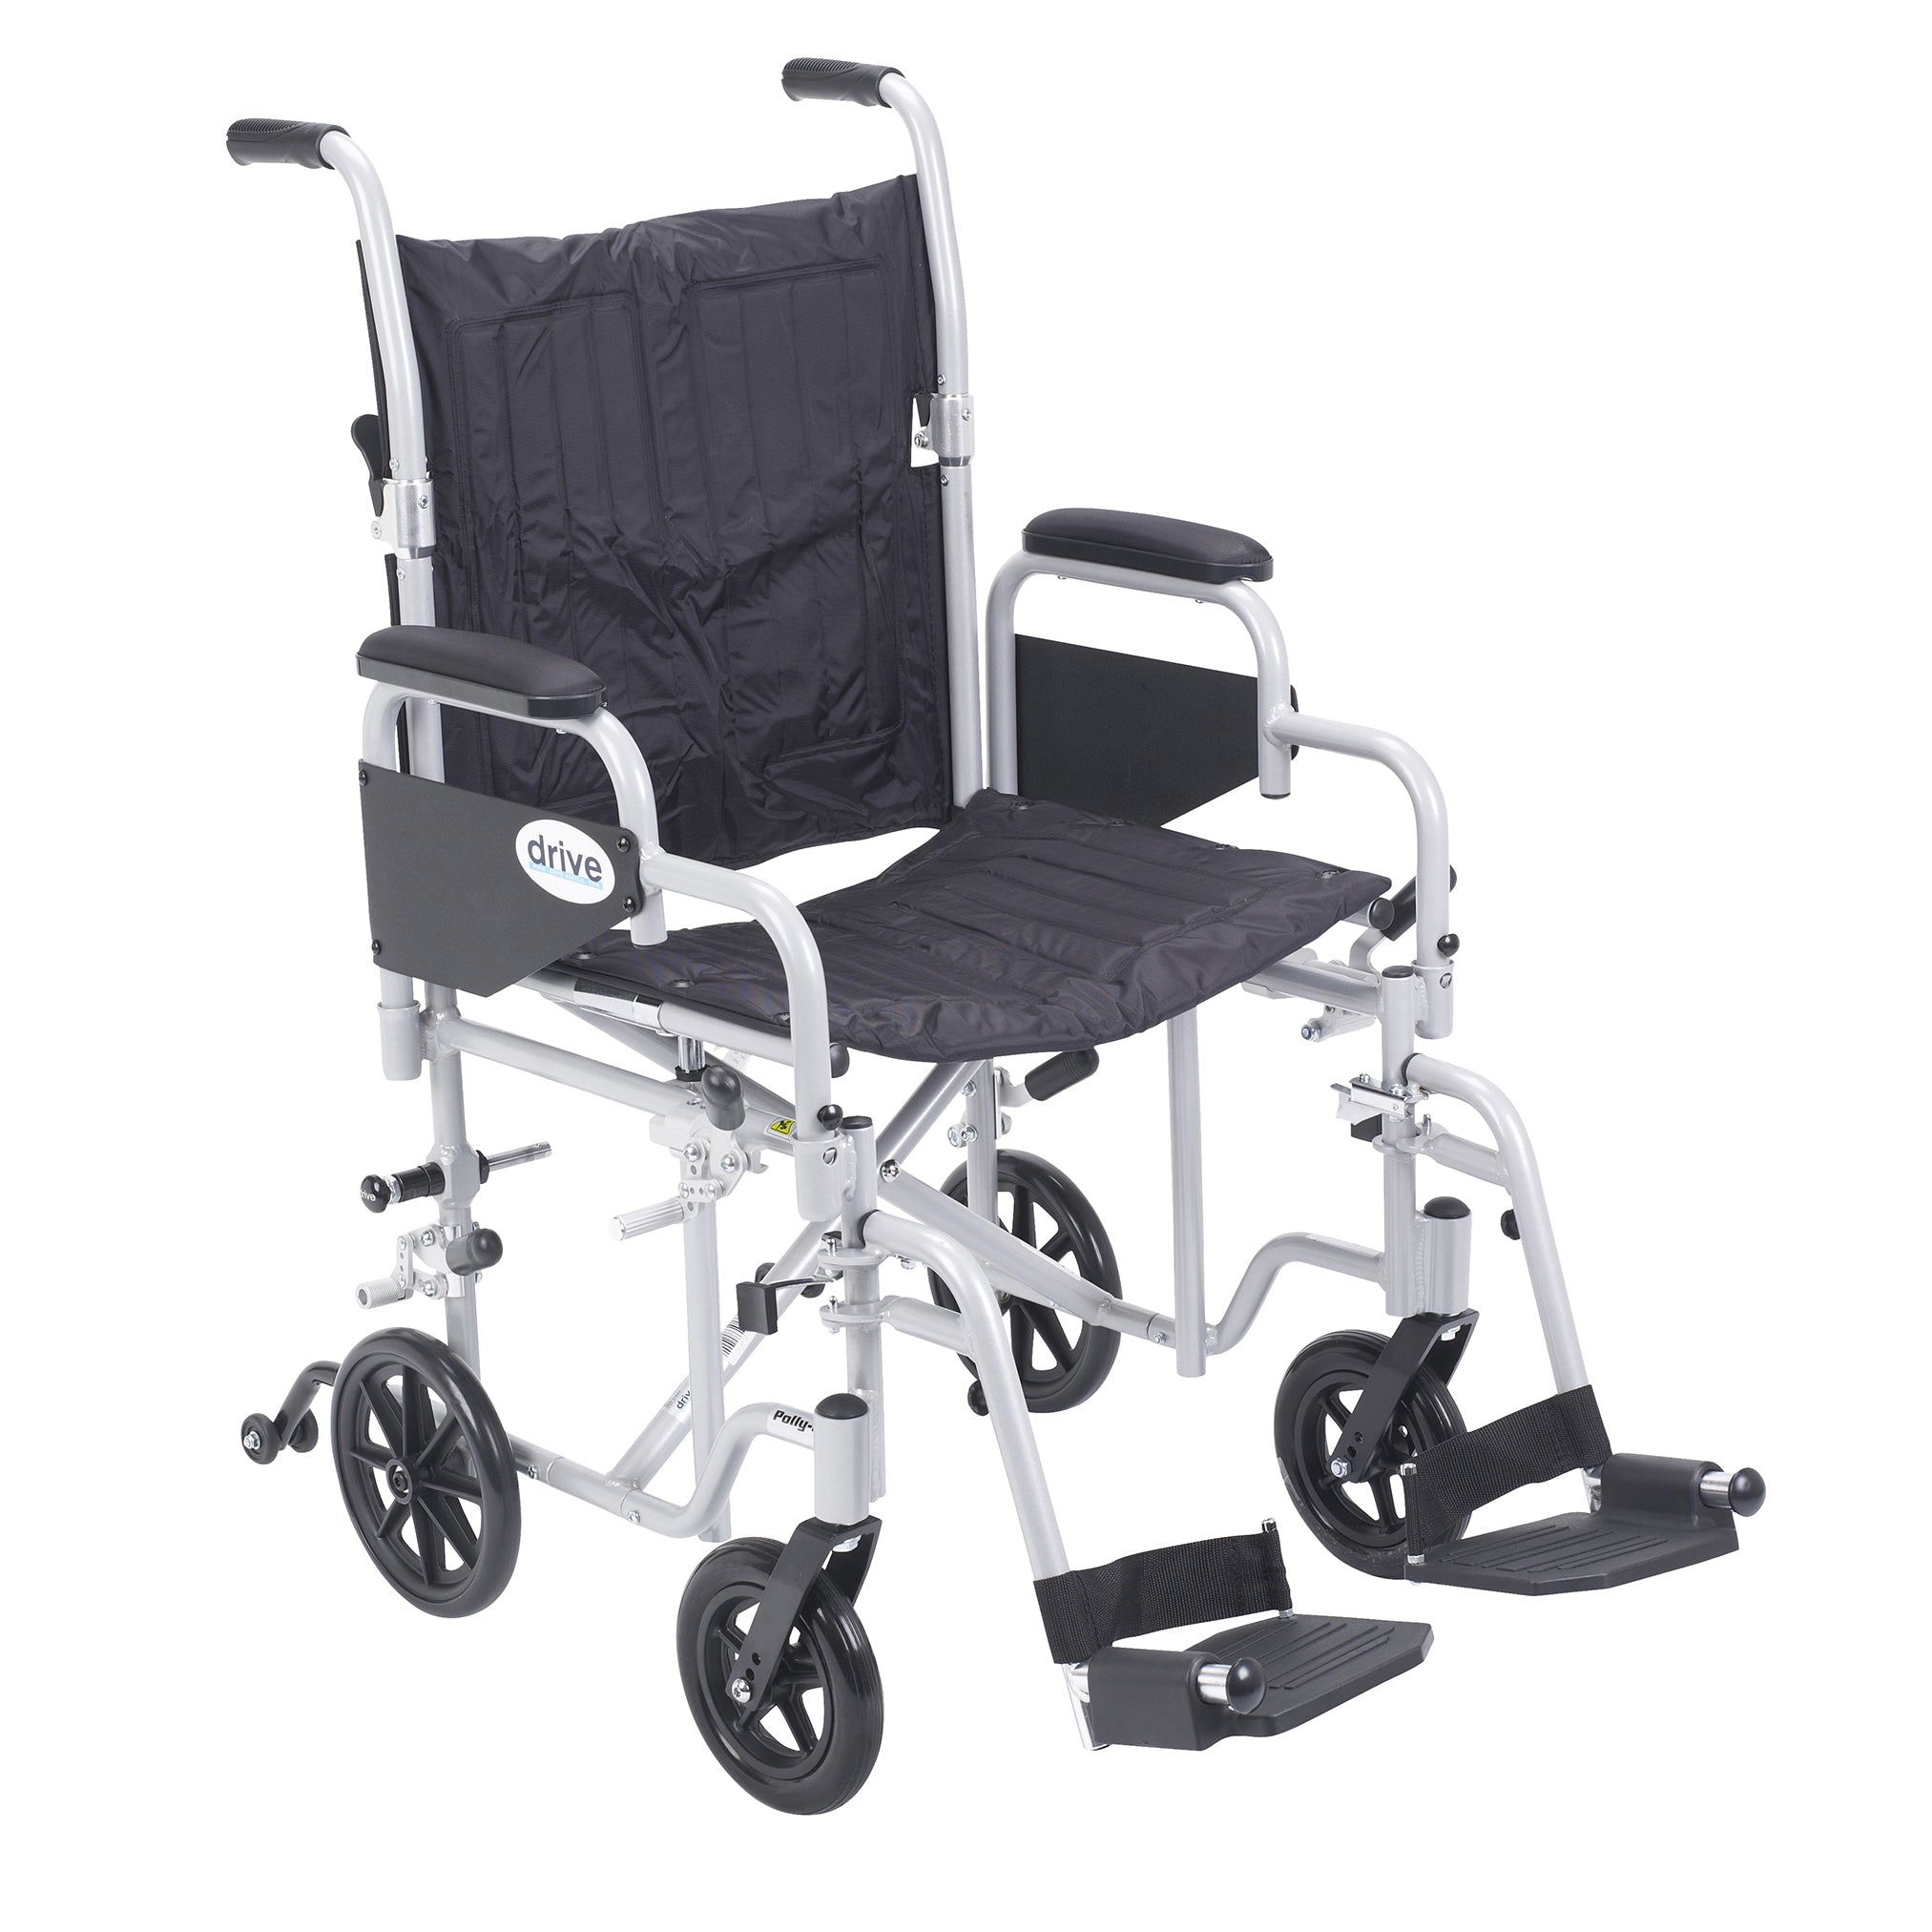 Drive Poly Fly Light Weight Transport Chair Wheelchair with Swing away Footrests, Seat